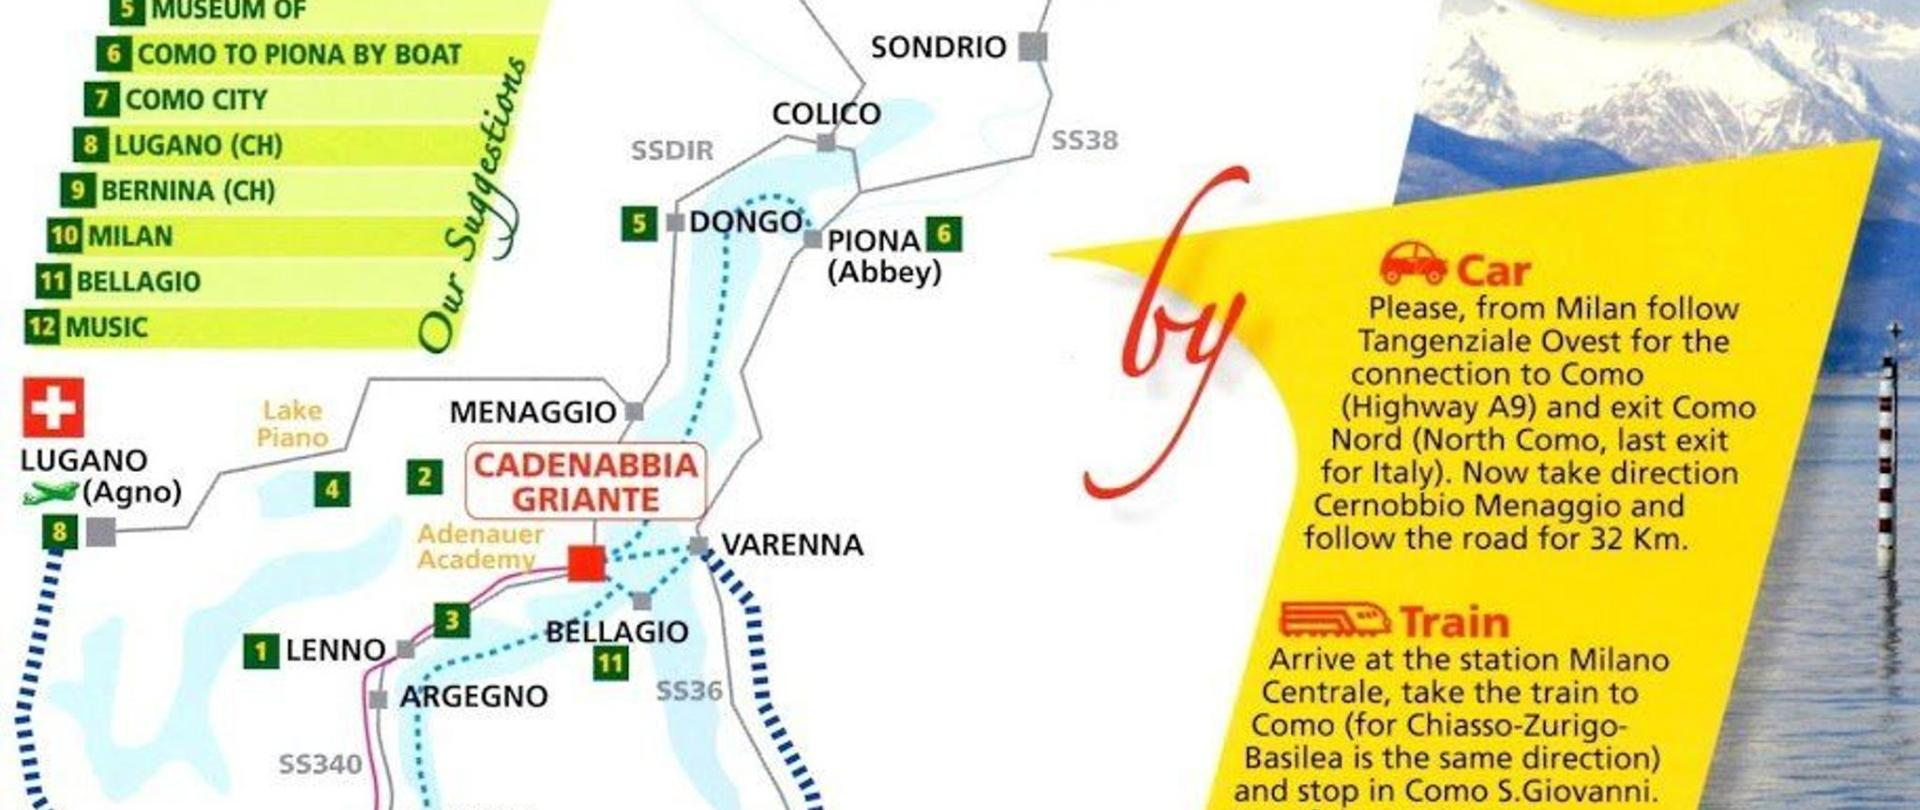 lake-como-map-and-griante-cadenabbia-position-central-lake-como.jpg